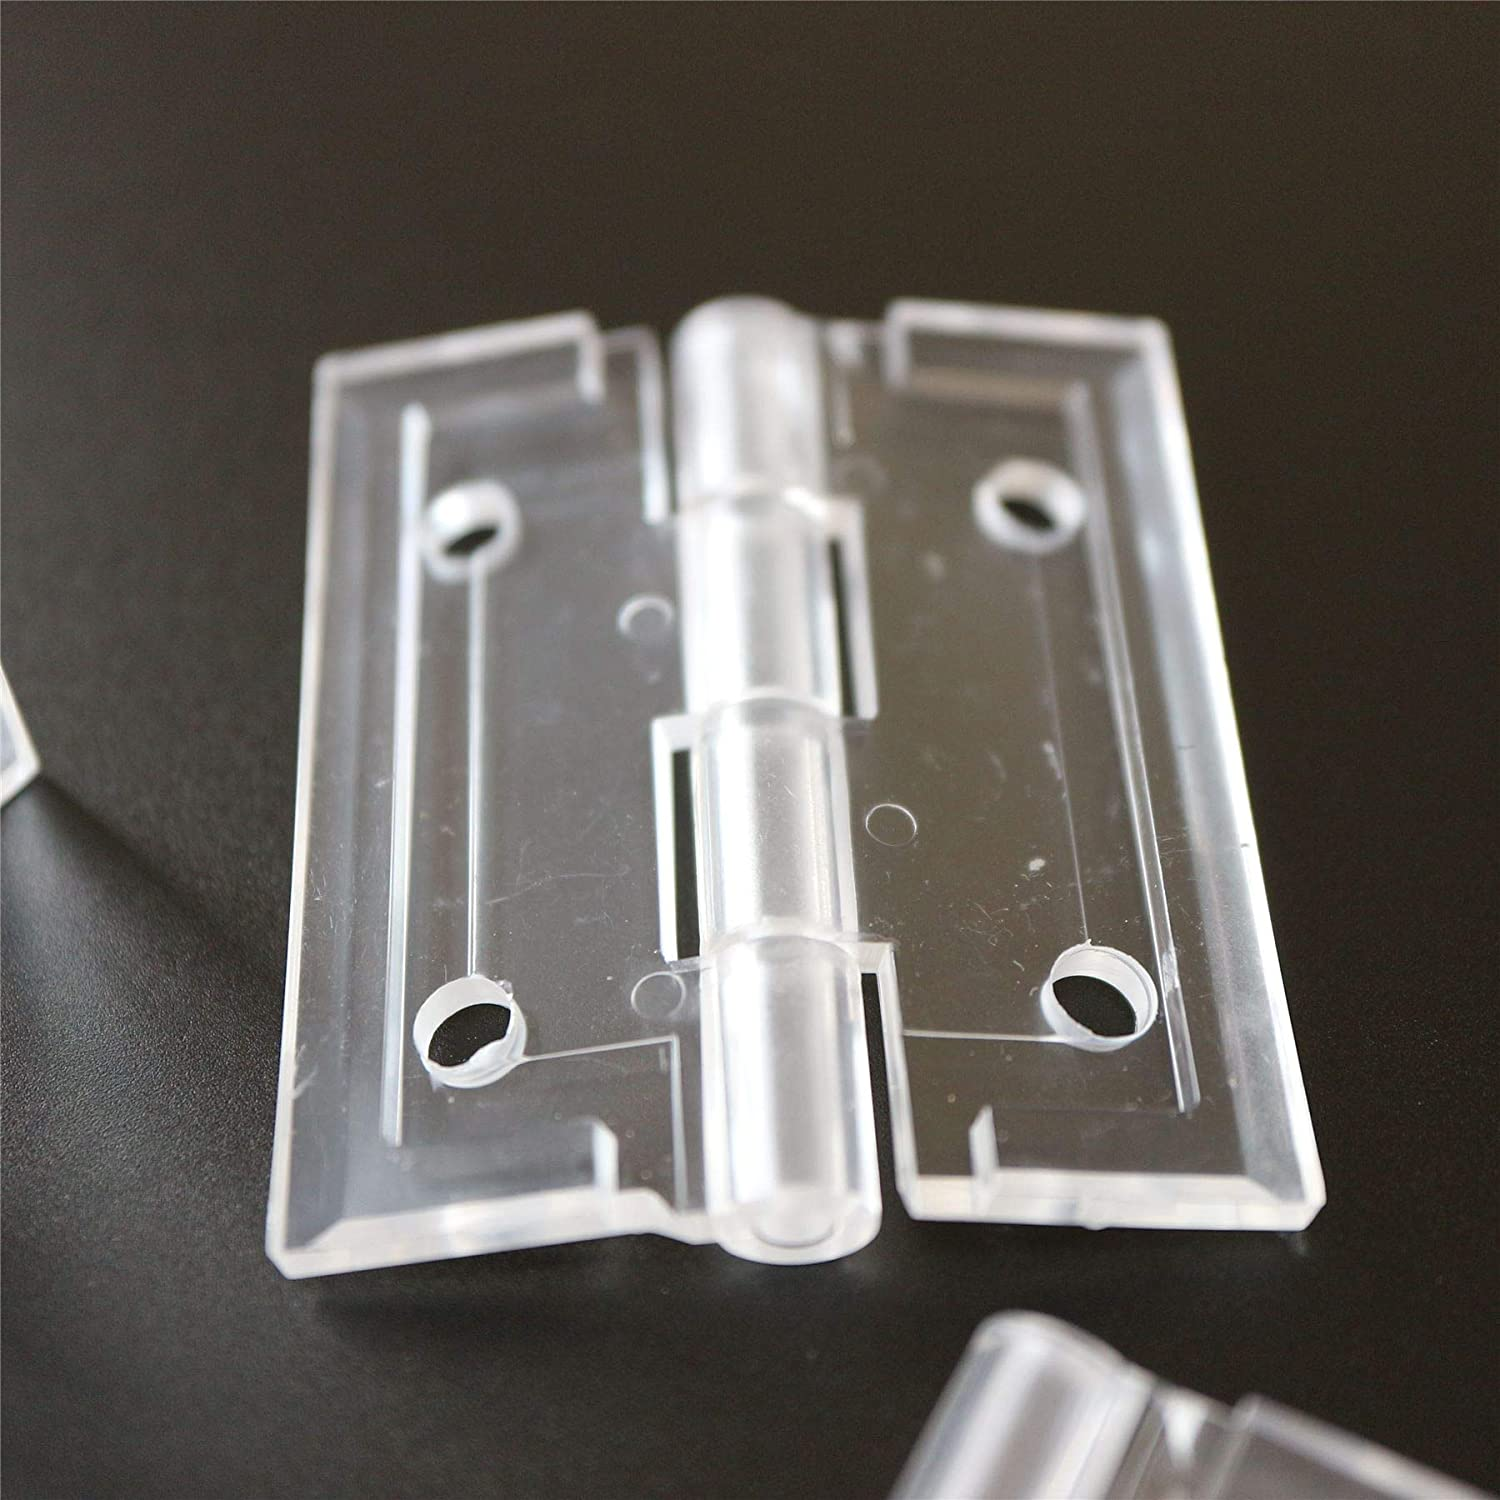 Clear Transparent Perspex Acrylic Corner 4 x Angled L Hinge Hinges Brackets Clear Right Angle Bracket 20x Bolts